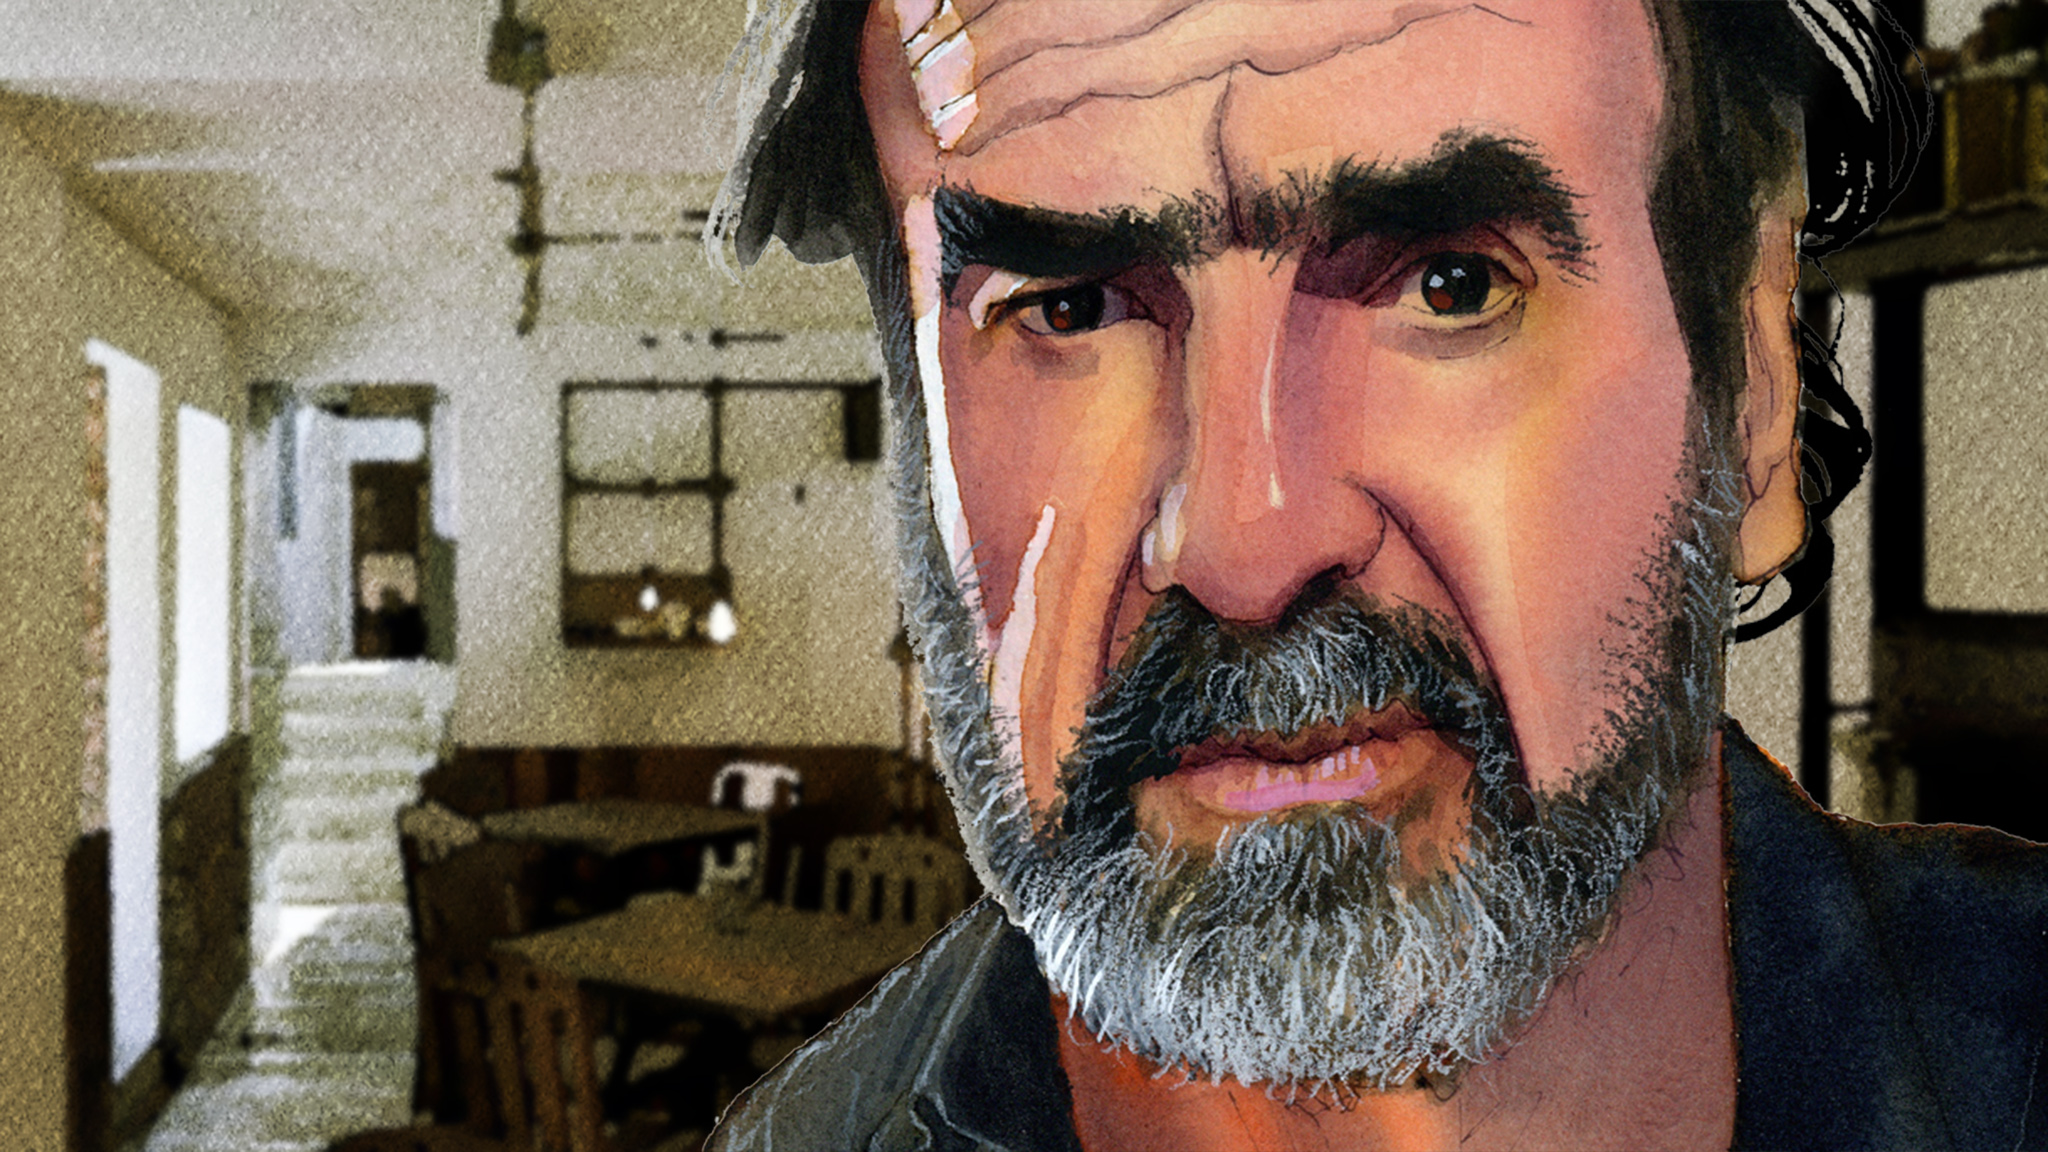 Over the last 20 years, the number of people who have stayed on the job past 65 has steadily increased. Eric Cantona On Seagulls Fixing Man Utd And Why You Can T Buy Passion Financial Times